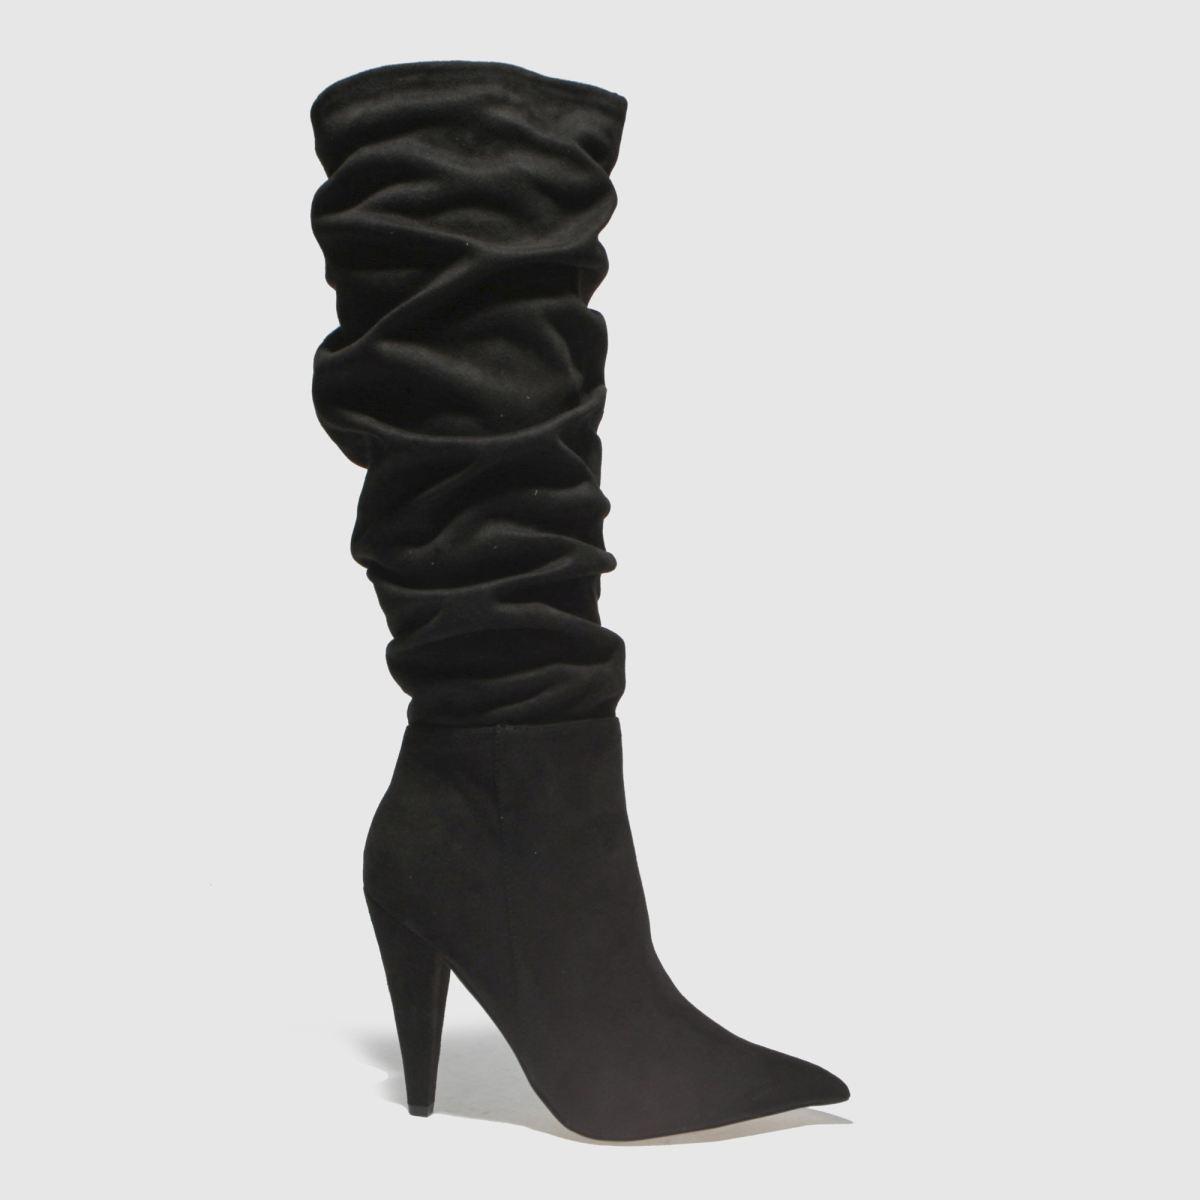 Schuh Black For Real Boots